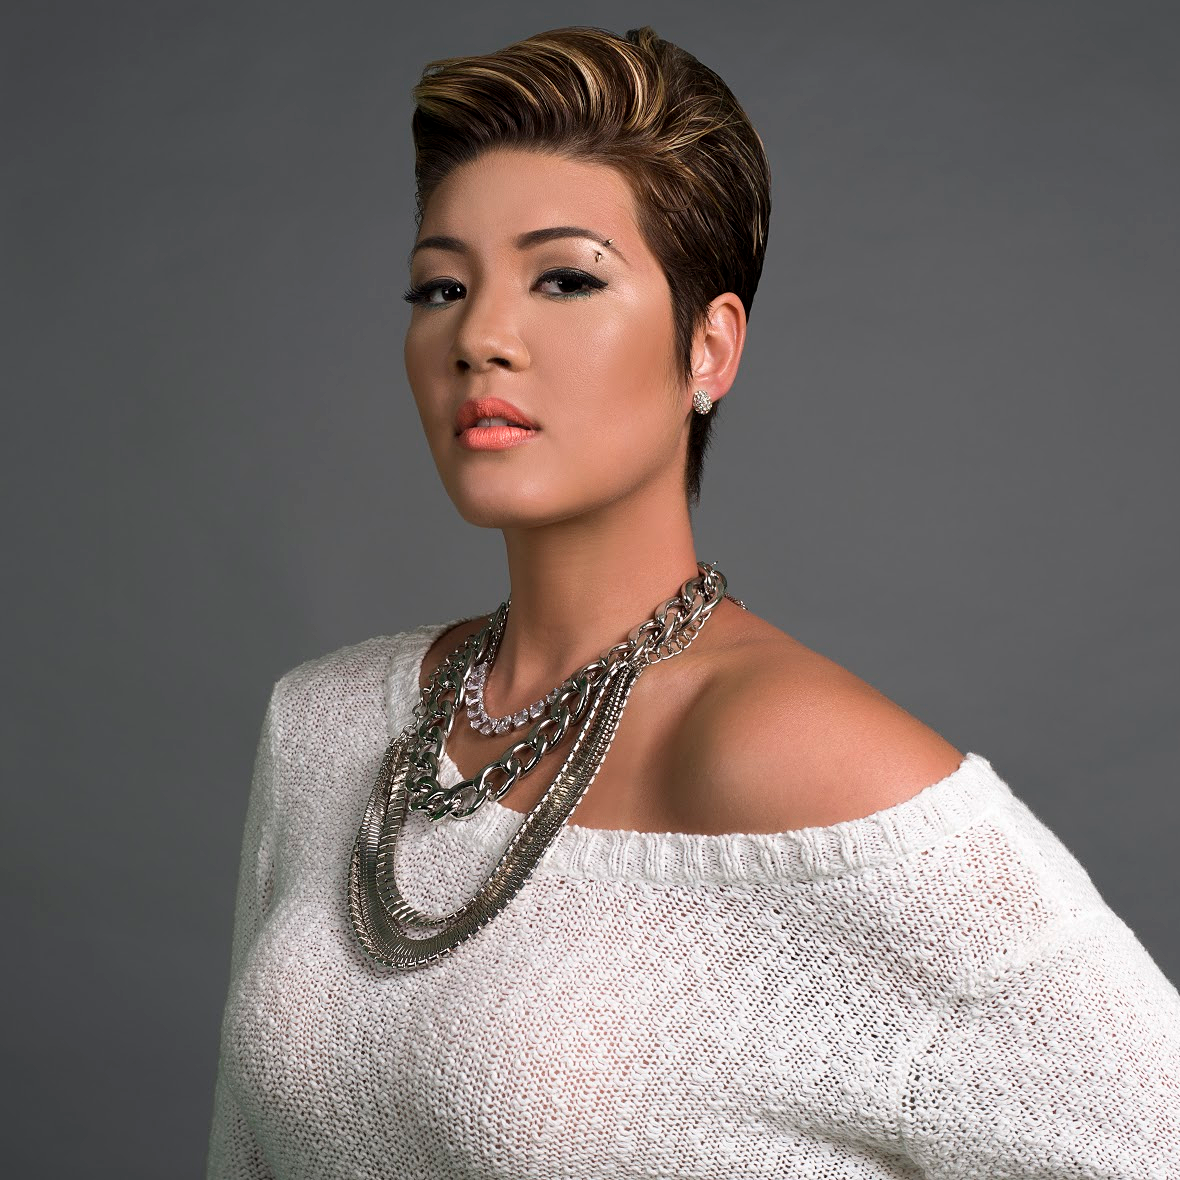 Tessanne Chin Pictures | MetroLyrics